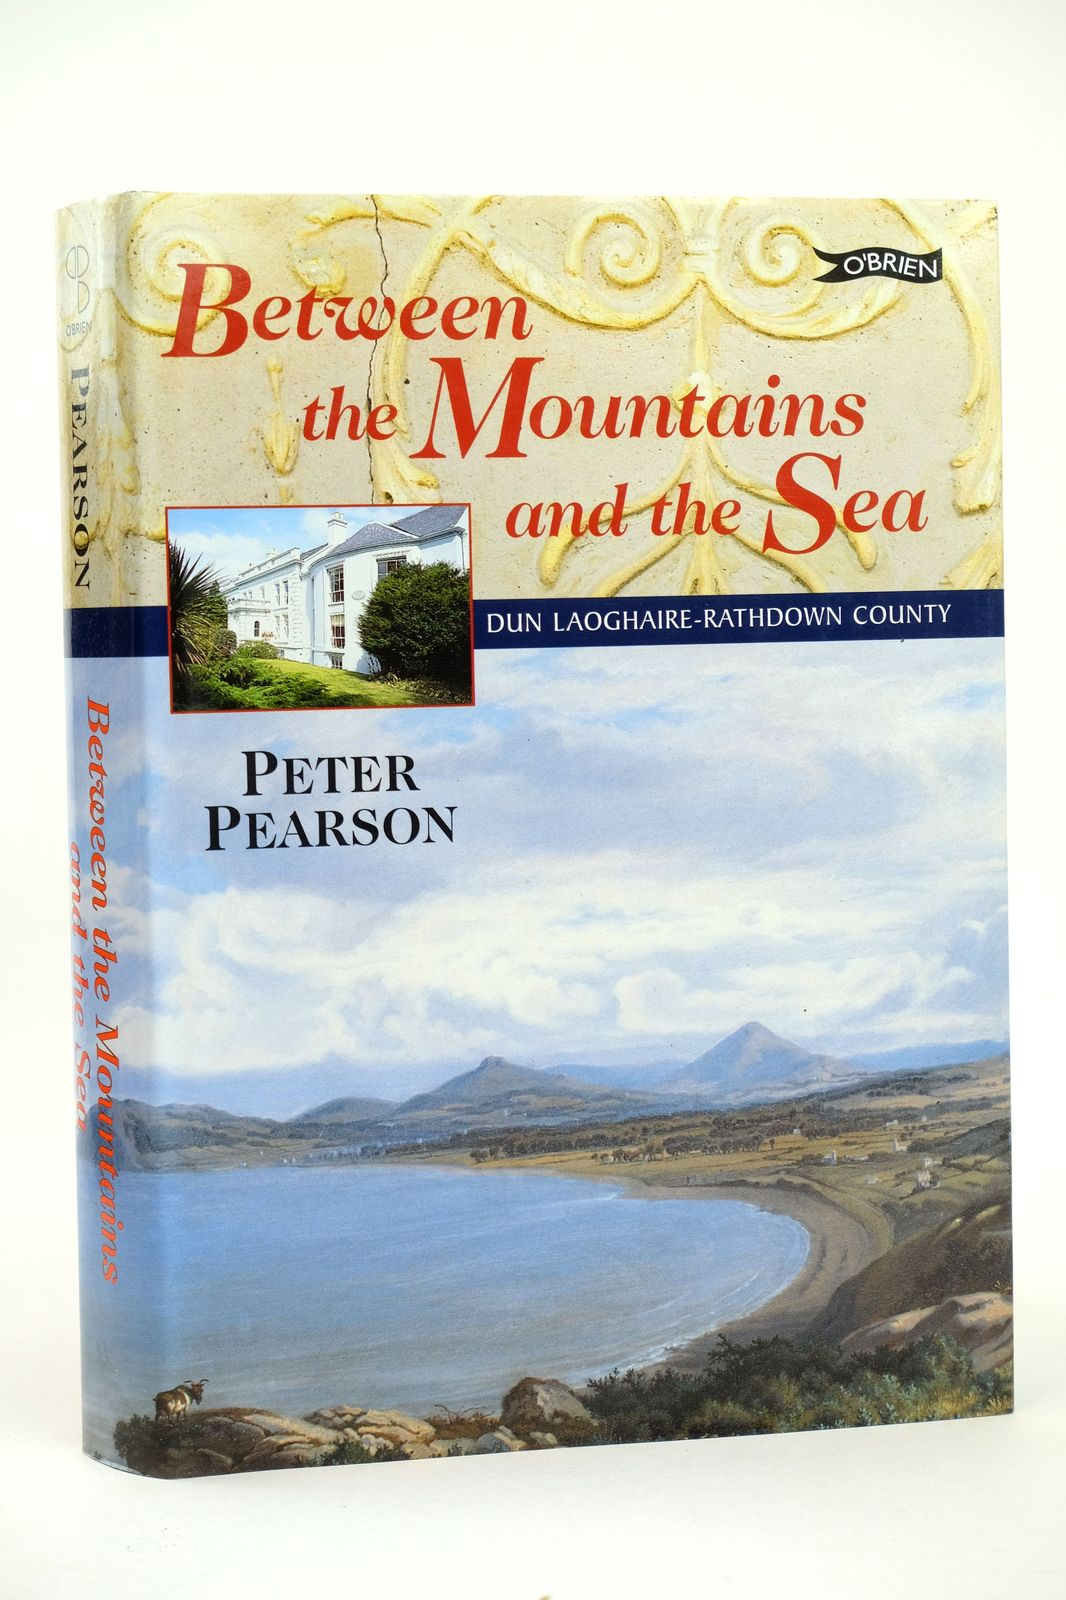 Photo of BETWEEN THE MOUNTAINS AND THE SEA: DUN LAOGHAIRE-RATHDOWN COUNTY written by Pearson, Peter published by The O'Brien Press Ltd. (STOCK CODE: 1818677)  for sale by Stella & Rose's Books